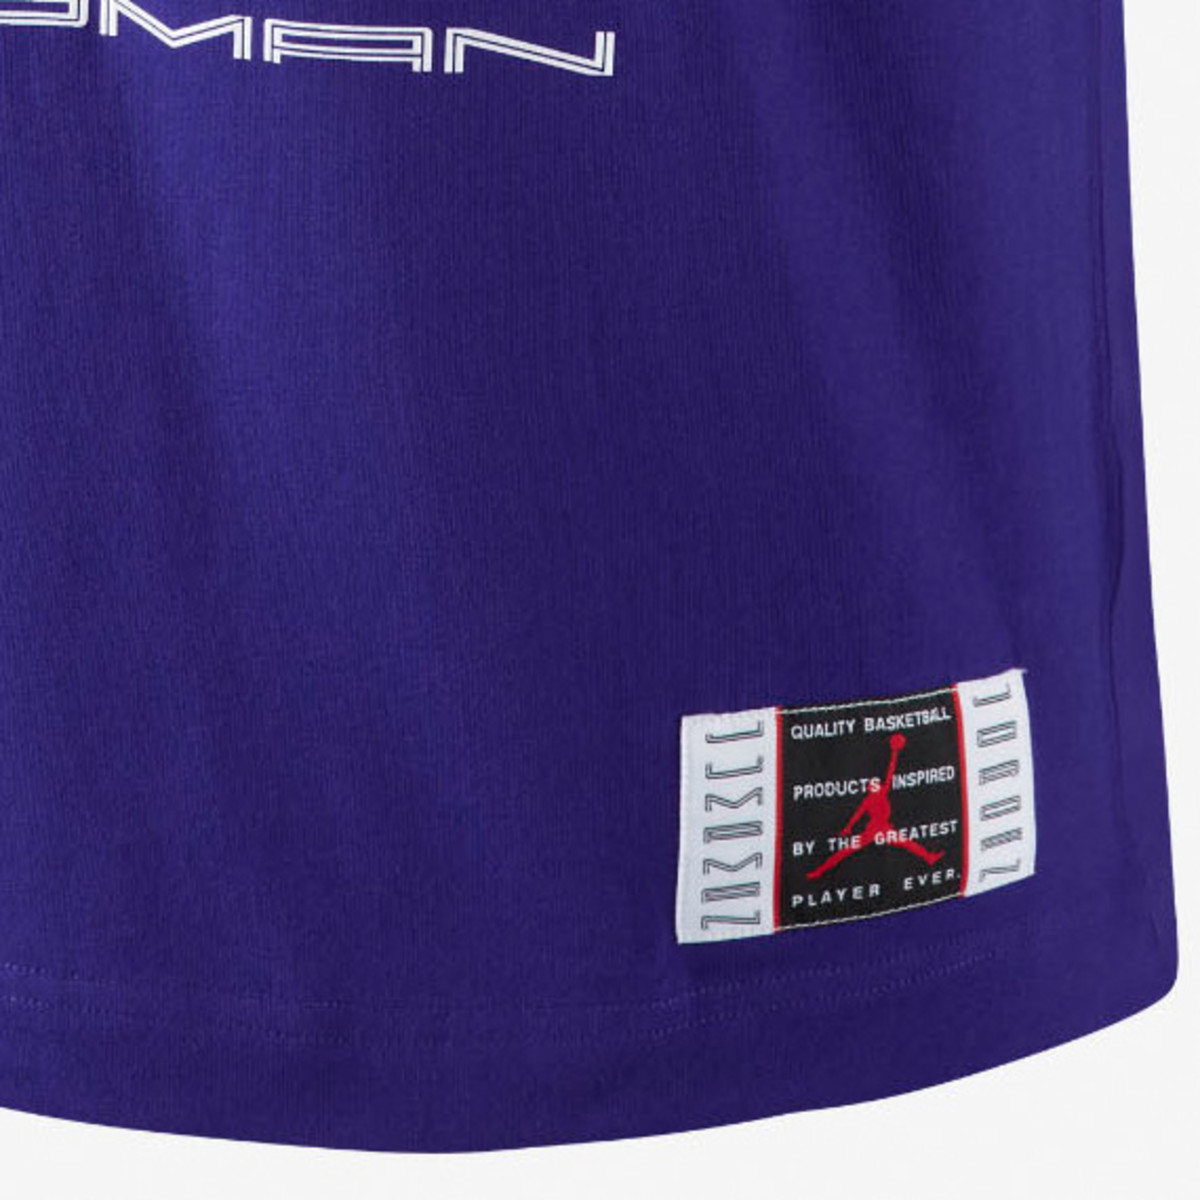 air-jordan-11-low-concord-apparel-accessories-collection-11